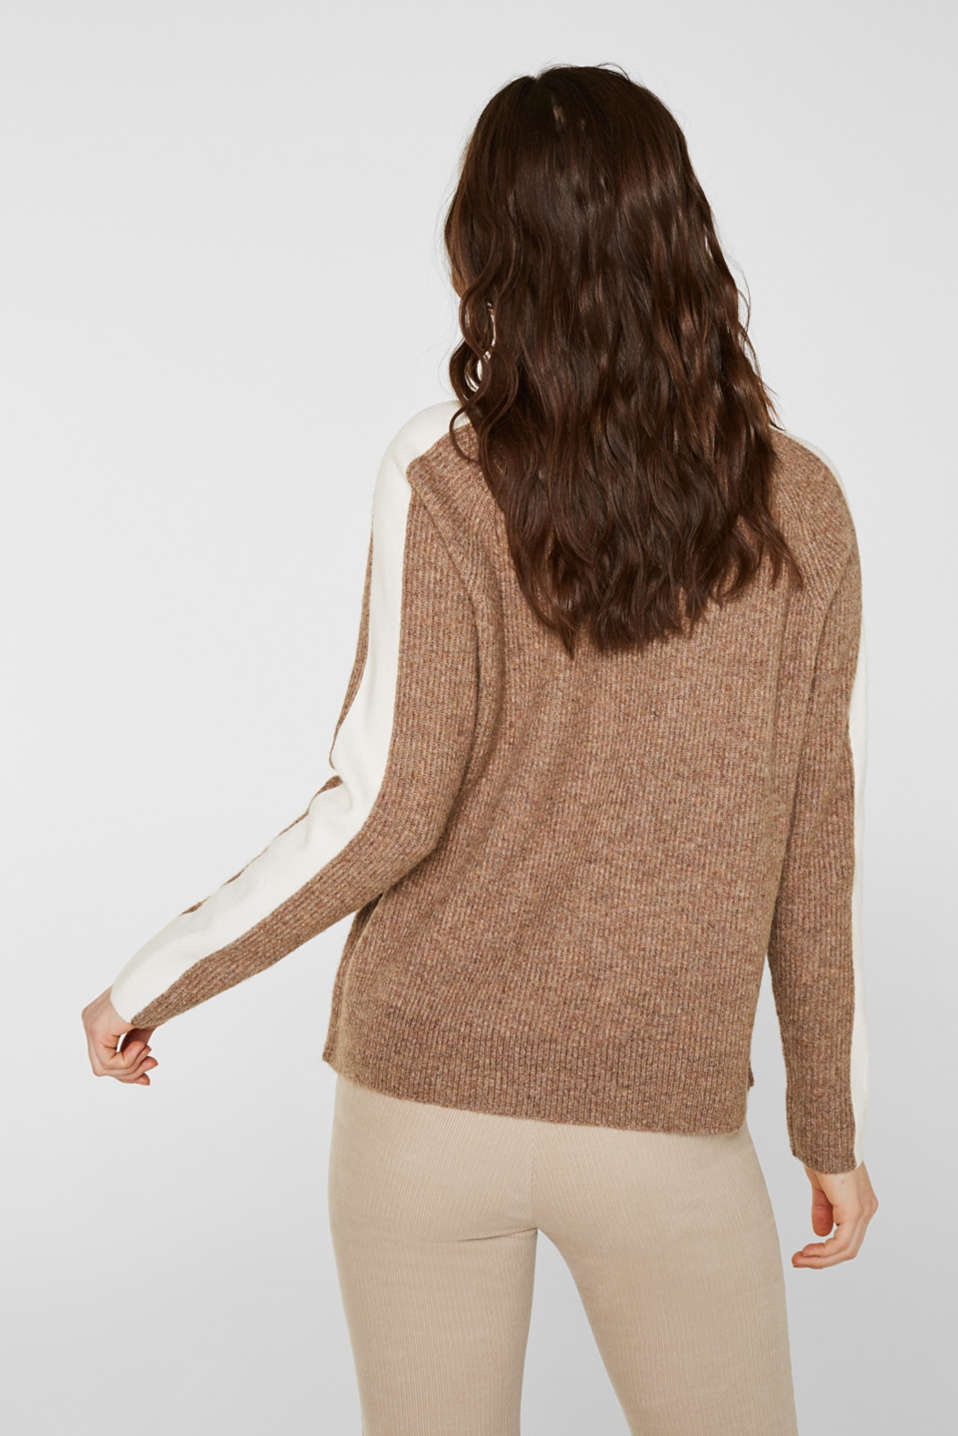 Polo neck jumper with racing stripes and wool, CAMEL 5, detail image number 3